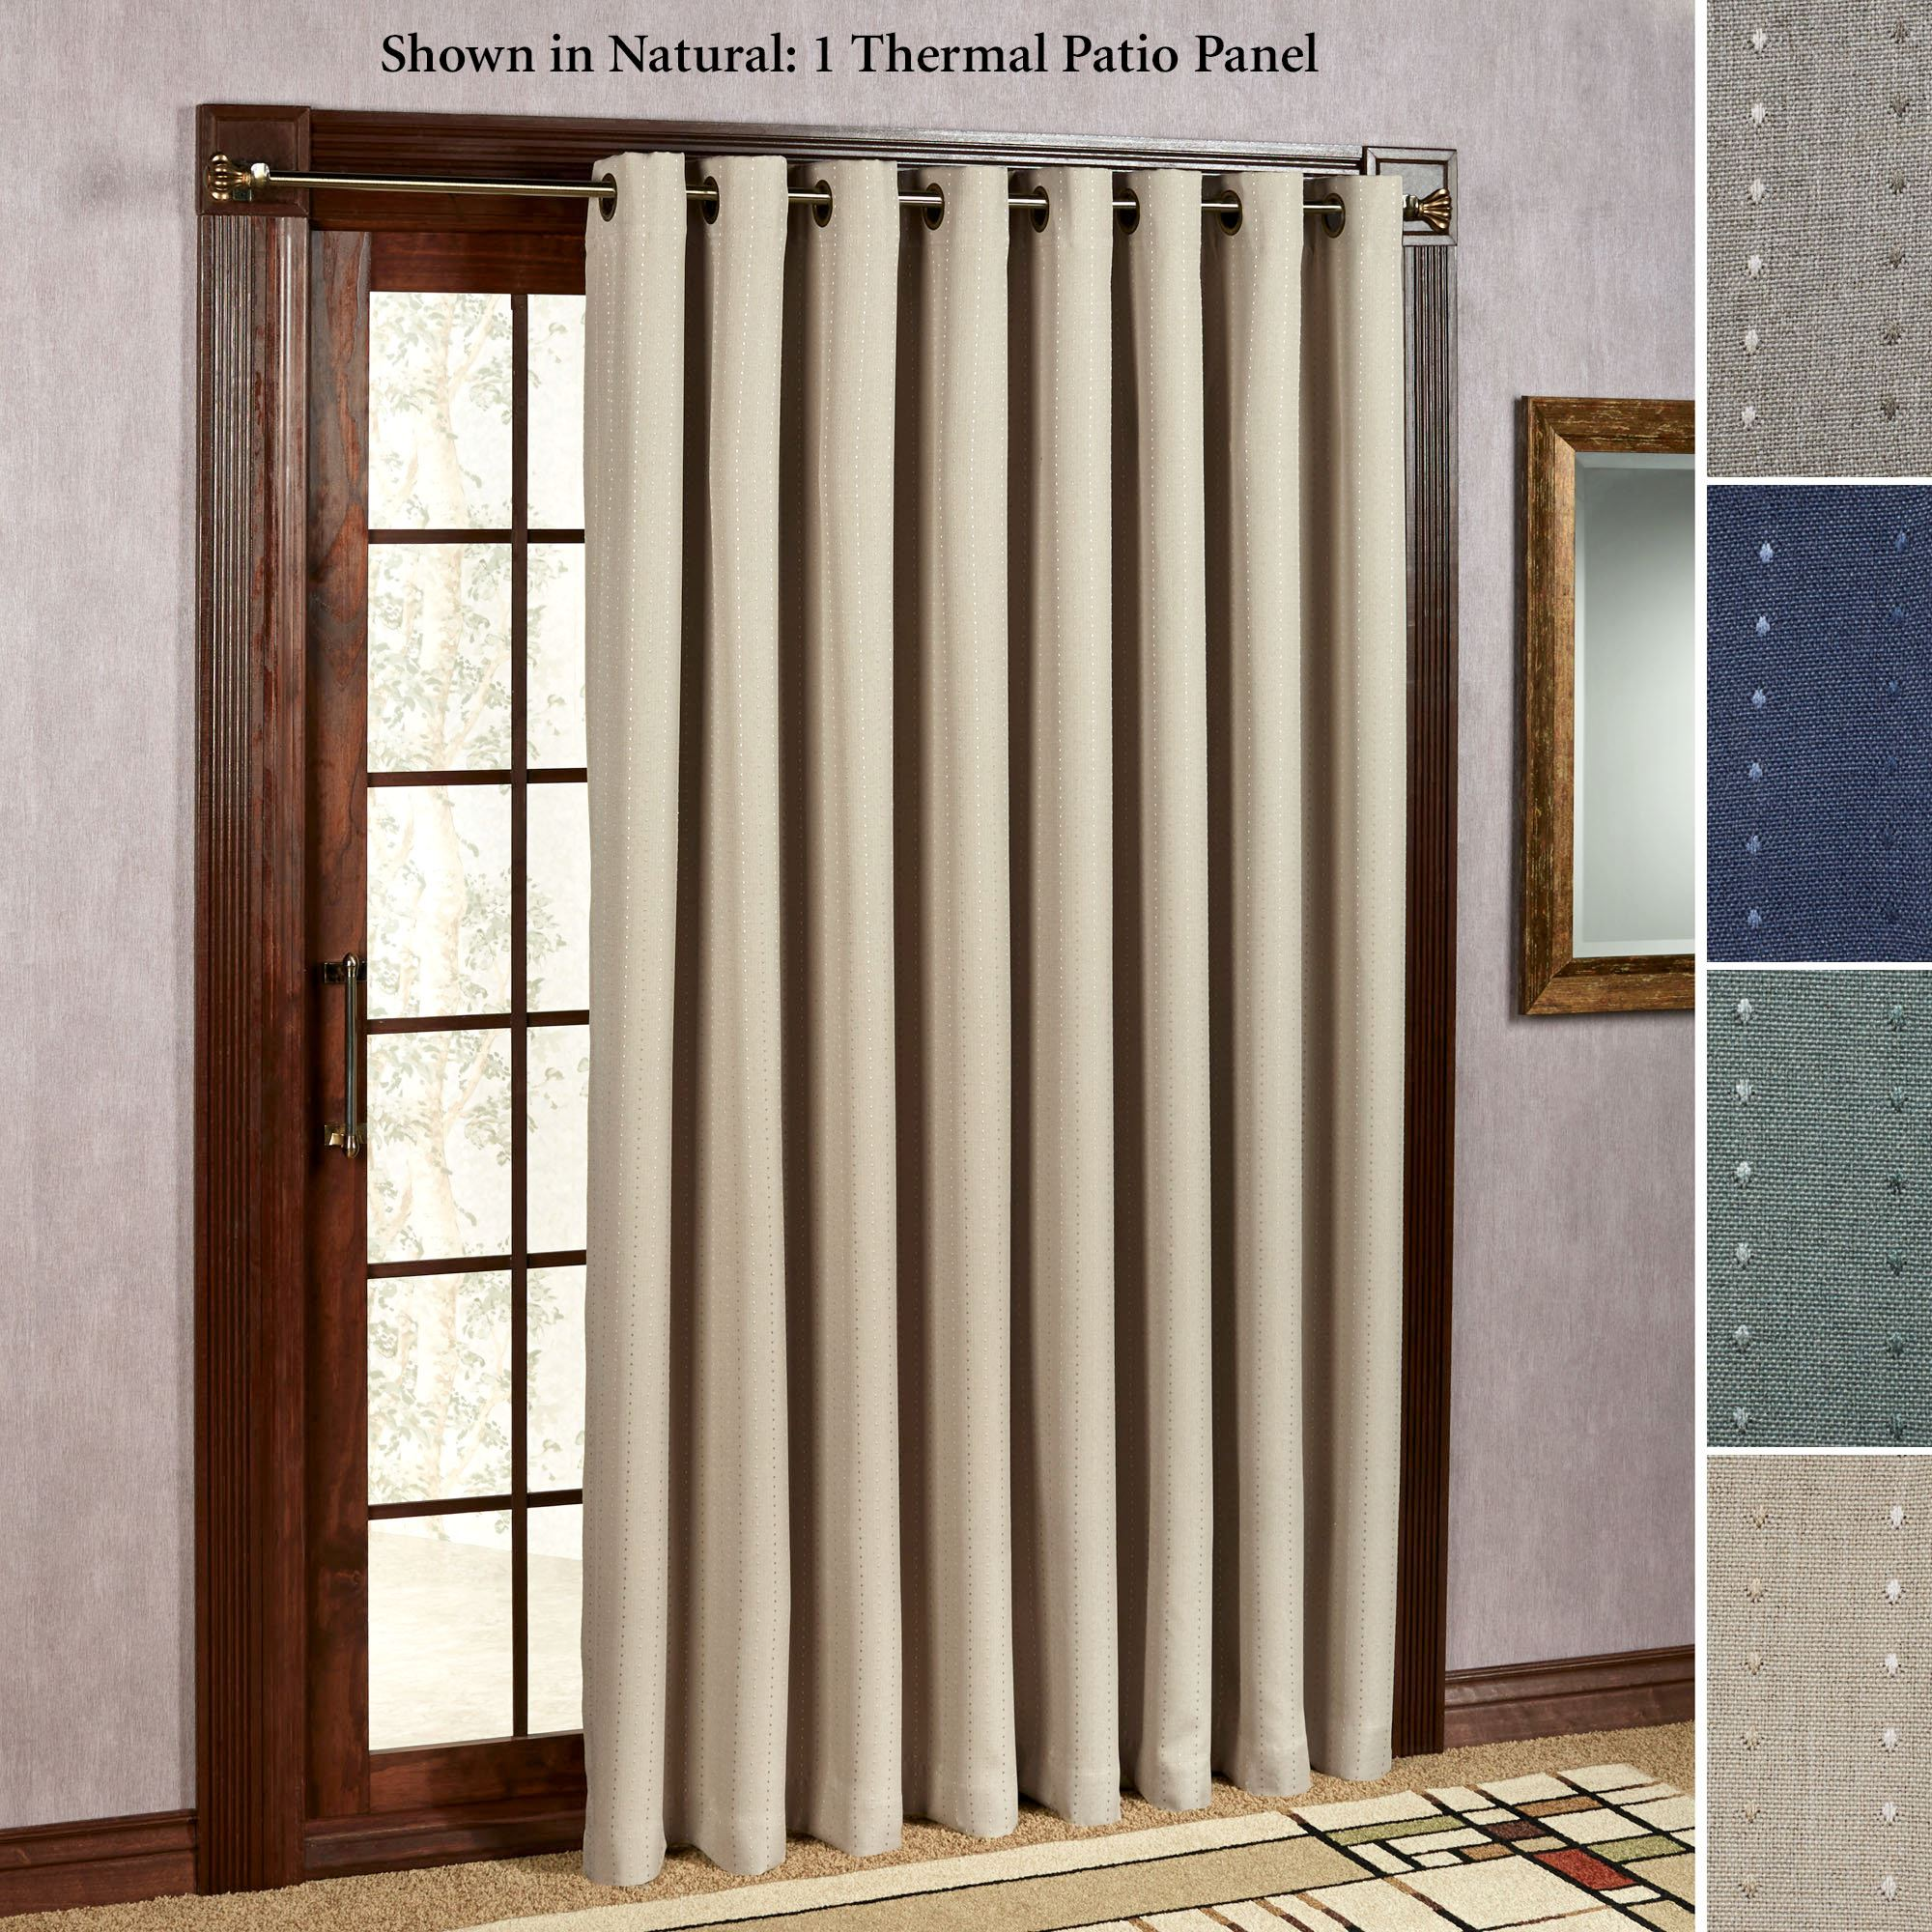 Cute Grand Pointe Grommet Patio Curtain Panel 110 x 84 patio door curtains